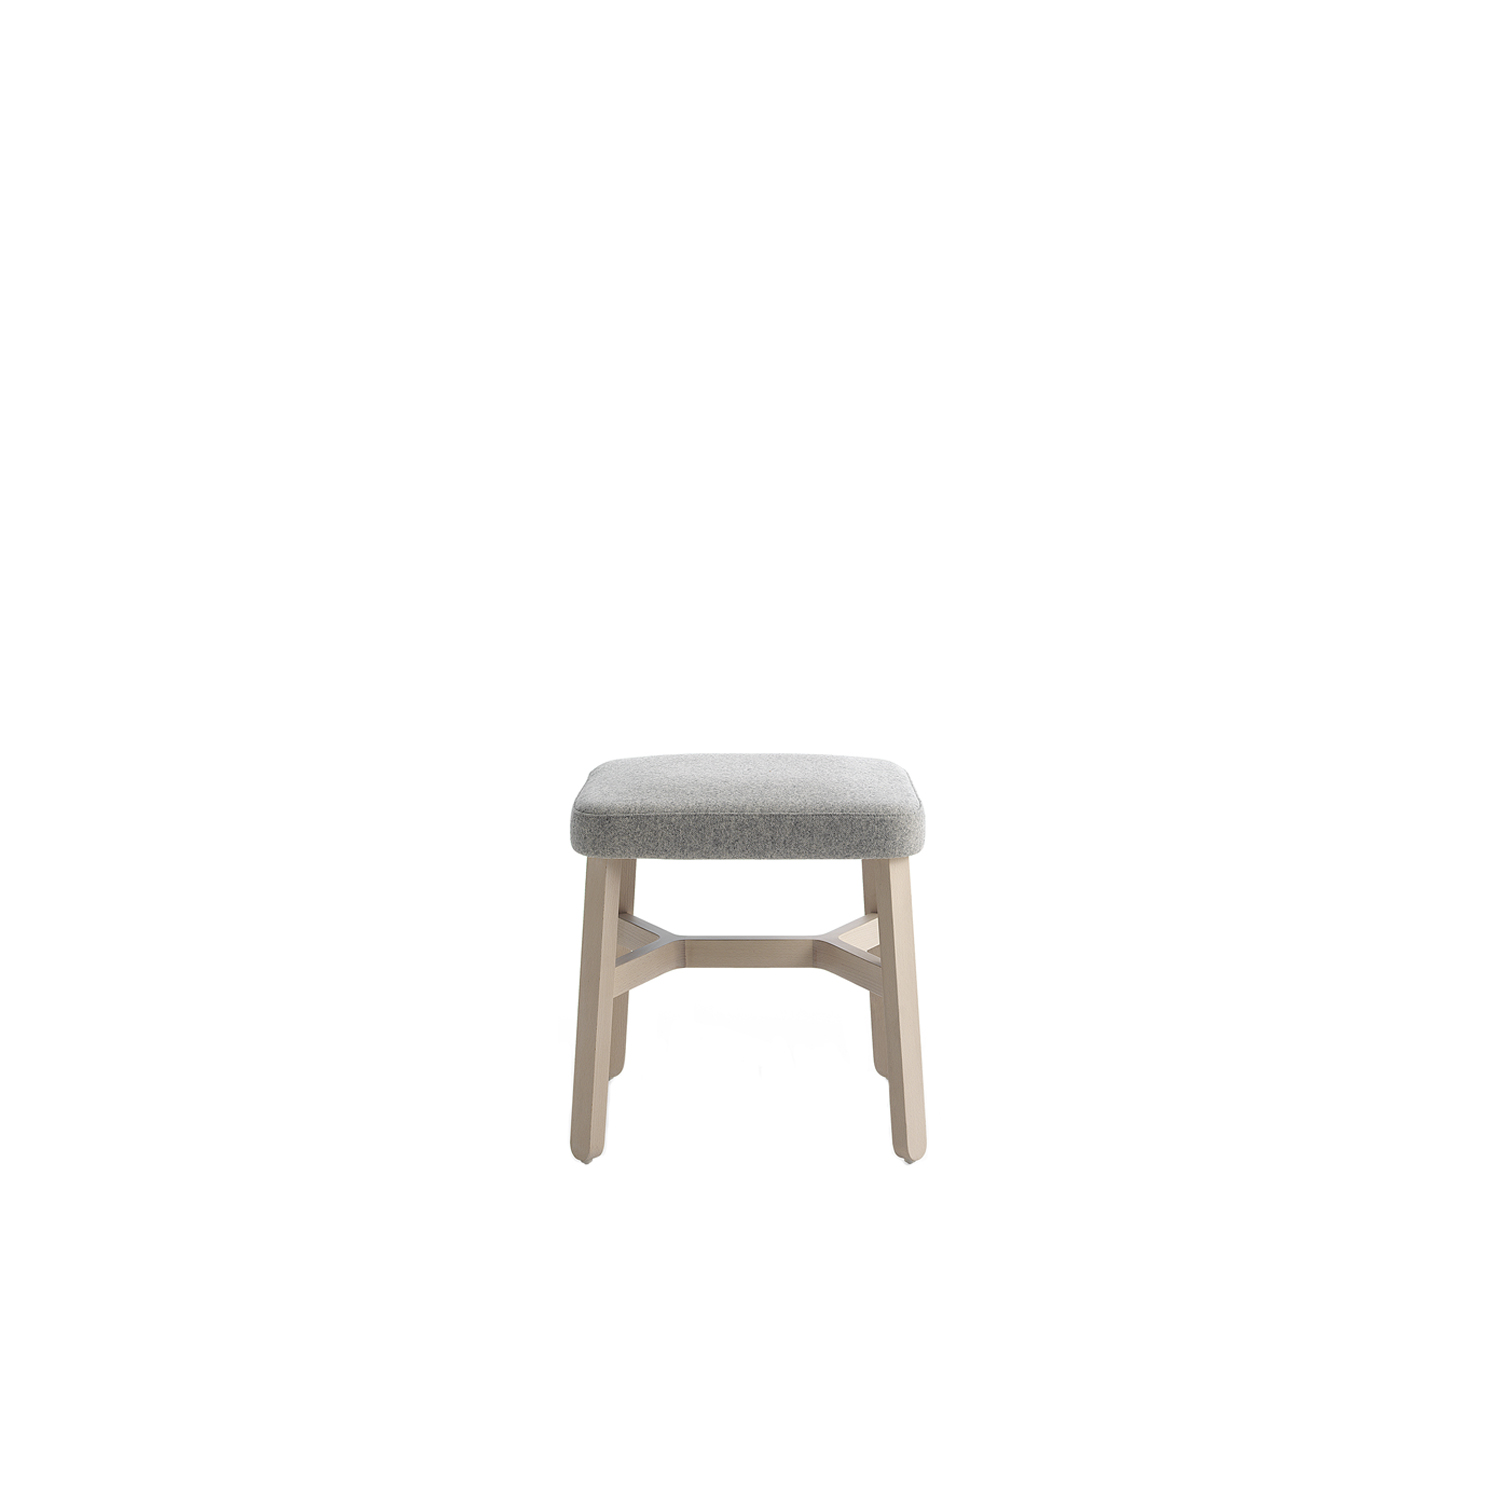 Croissant Small Stool - <p>Three heights of barstools in stained or lacquered beechwood, with upholstered seat and back. A crucial thought. A refined sense of belonging unites the entire Croissant collection, a recurring design, the crosspiece which distinguishes all the seating, as well as the tables. From the dining table to lounge areas, from restaurant bars and lobbies to privating dining: a complete collection. Chair, armchair, lounge chair, stools, sofa, pouffe and benches in stained or lacquered beechwood, with upholstered seat and back. Tables with frame in stained or lacquered beechwood and top in lacquered or laminated mdf or compact laminate.</p>  | Matter of Stuff